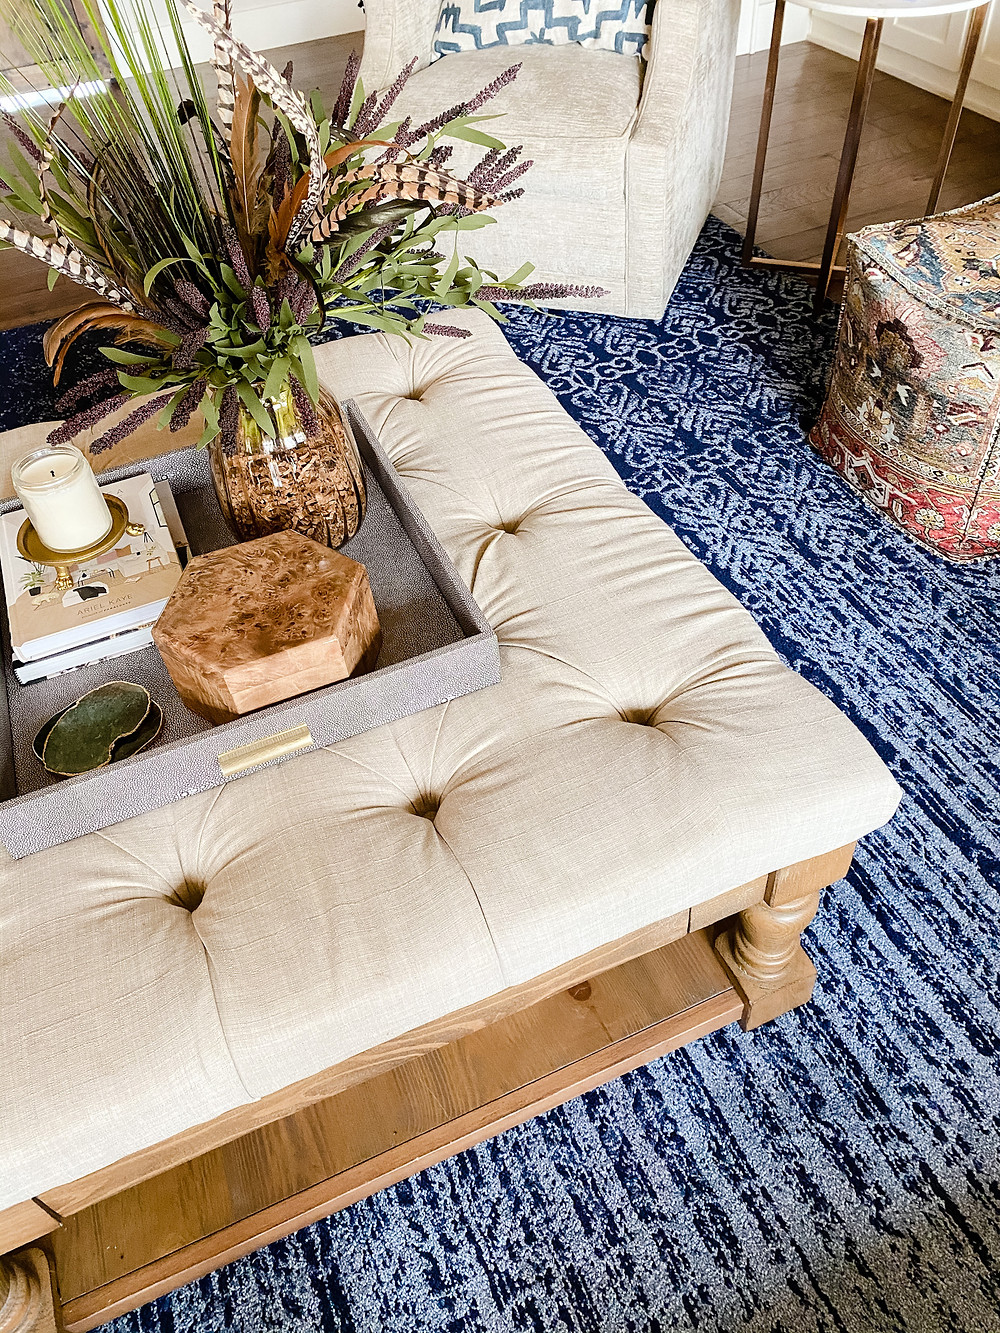 The Falls Classic Boho Family Room Coffee Table Styling